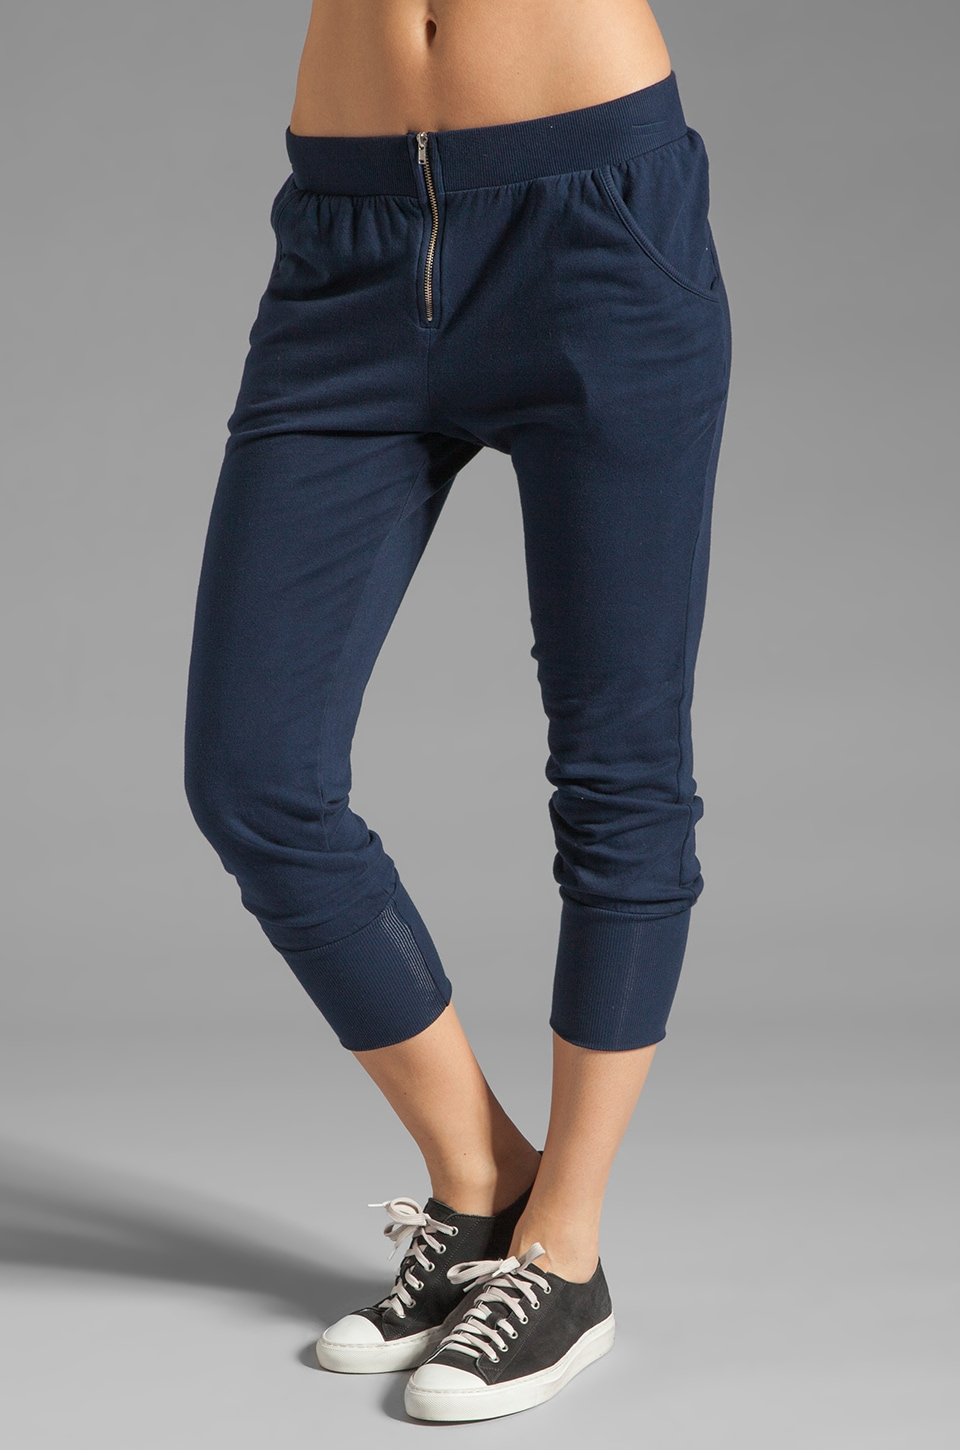 SOLOW Slouchy Ankle Pant in Navy